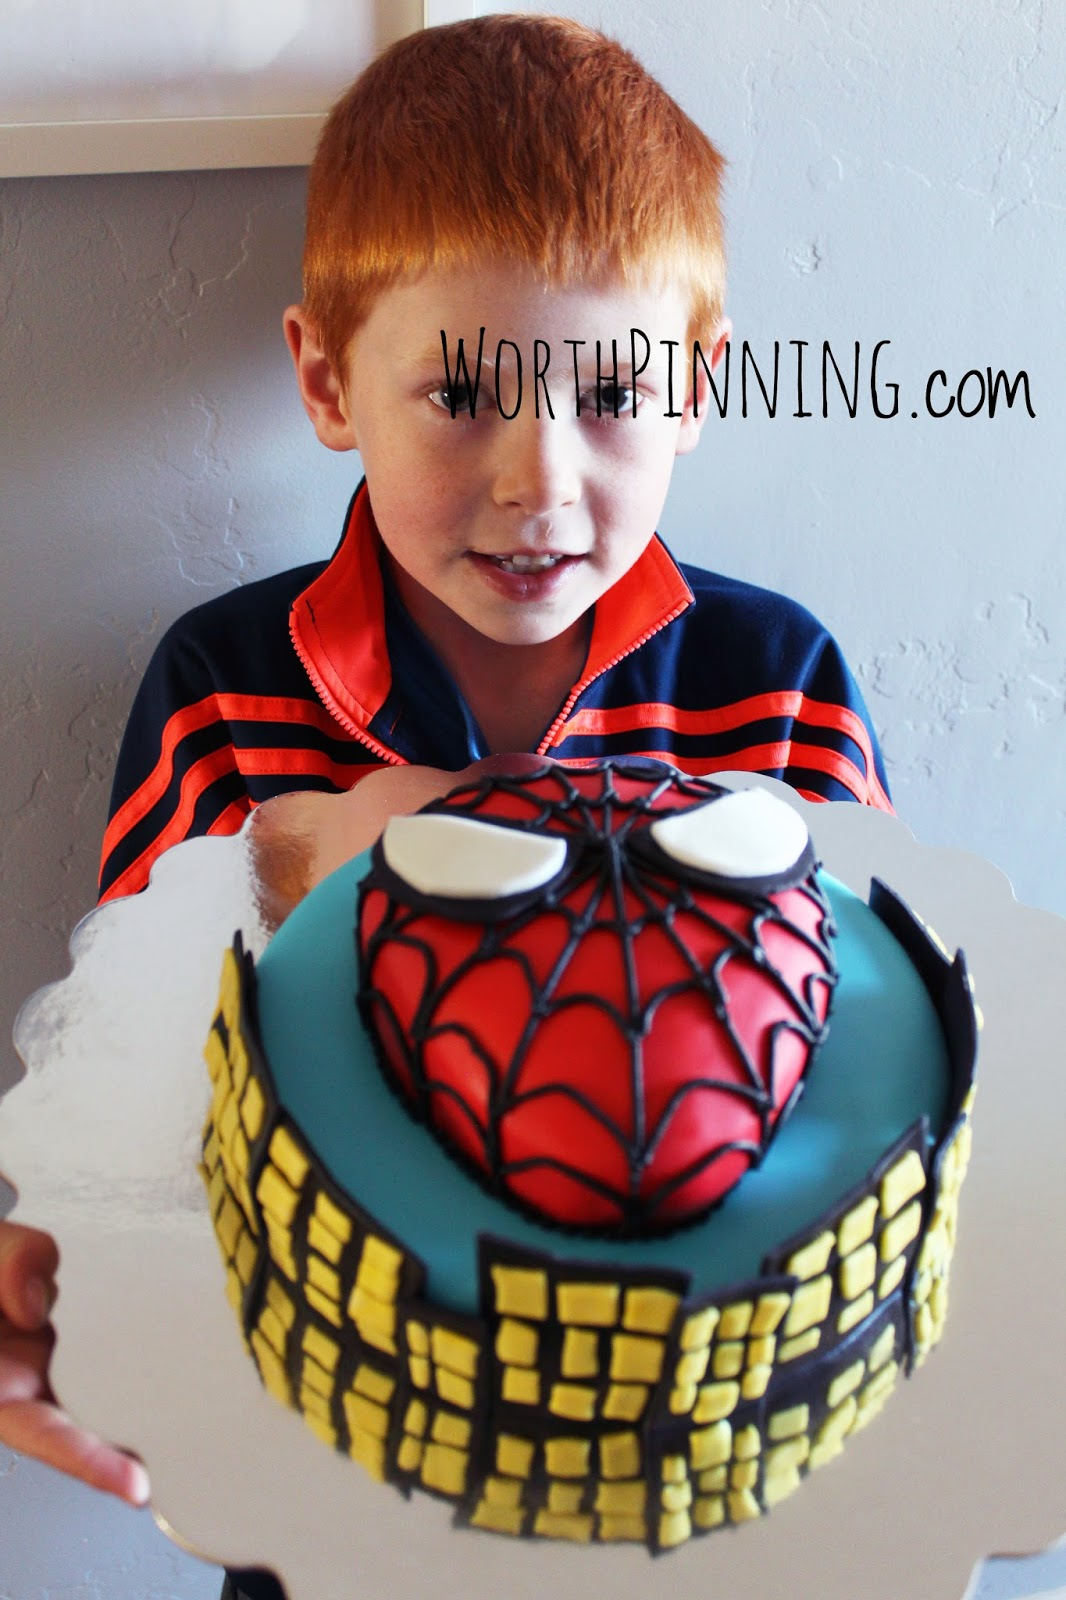 Hell Have 6 Other Superhero Boys Over To Help Him Celebrate Turning 7 Fight Off Any Evil And Definitely Eat Cake